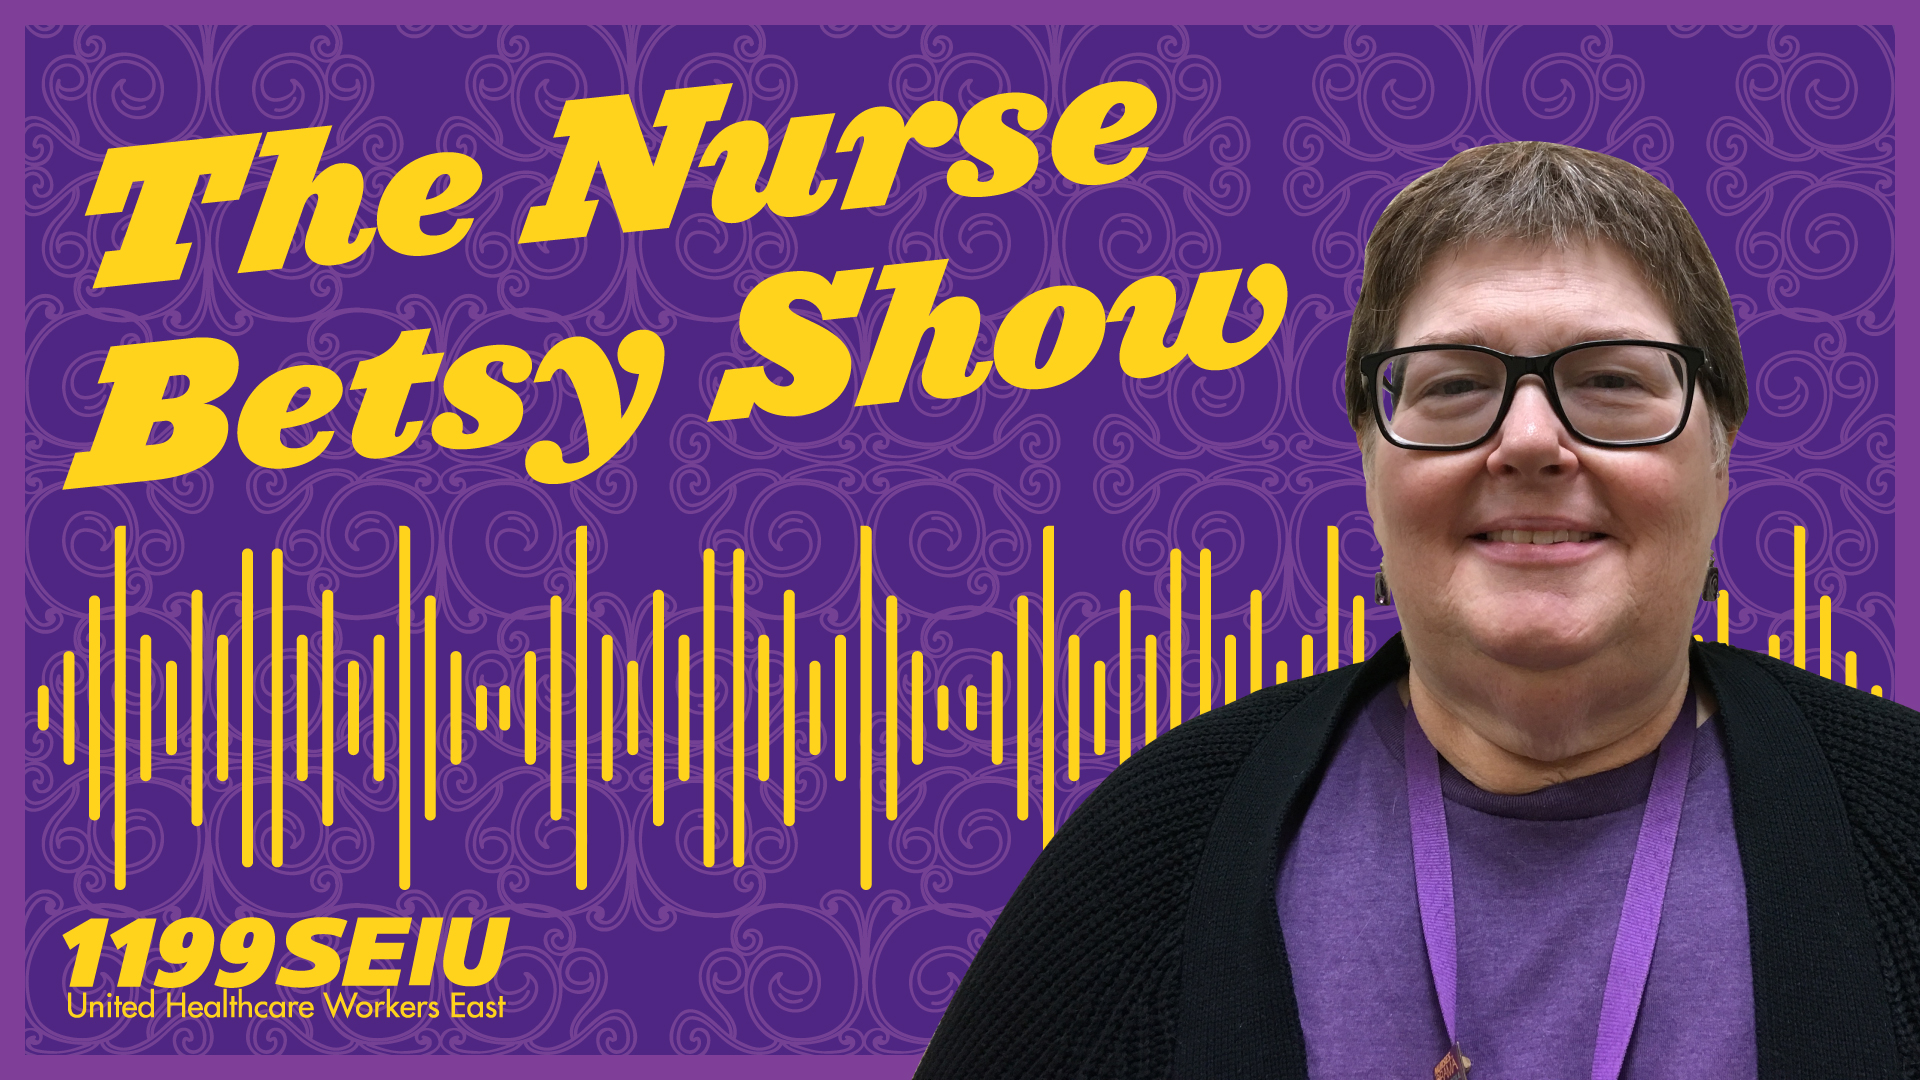 Nurse Betsy Show opening graphic 7-26-21[88].jpg